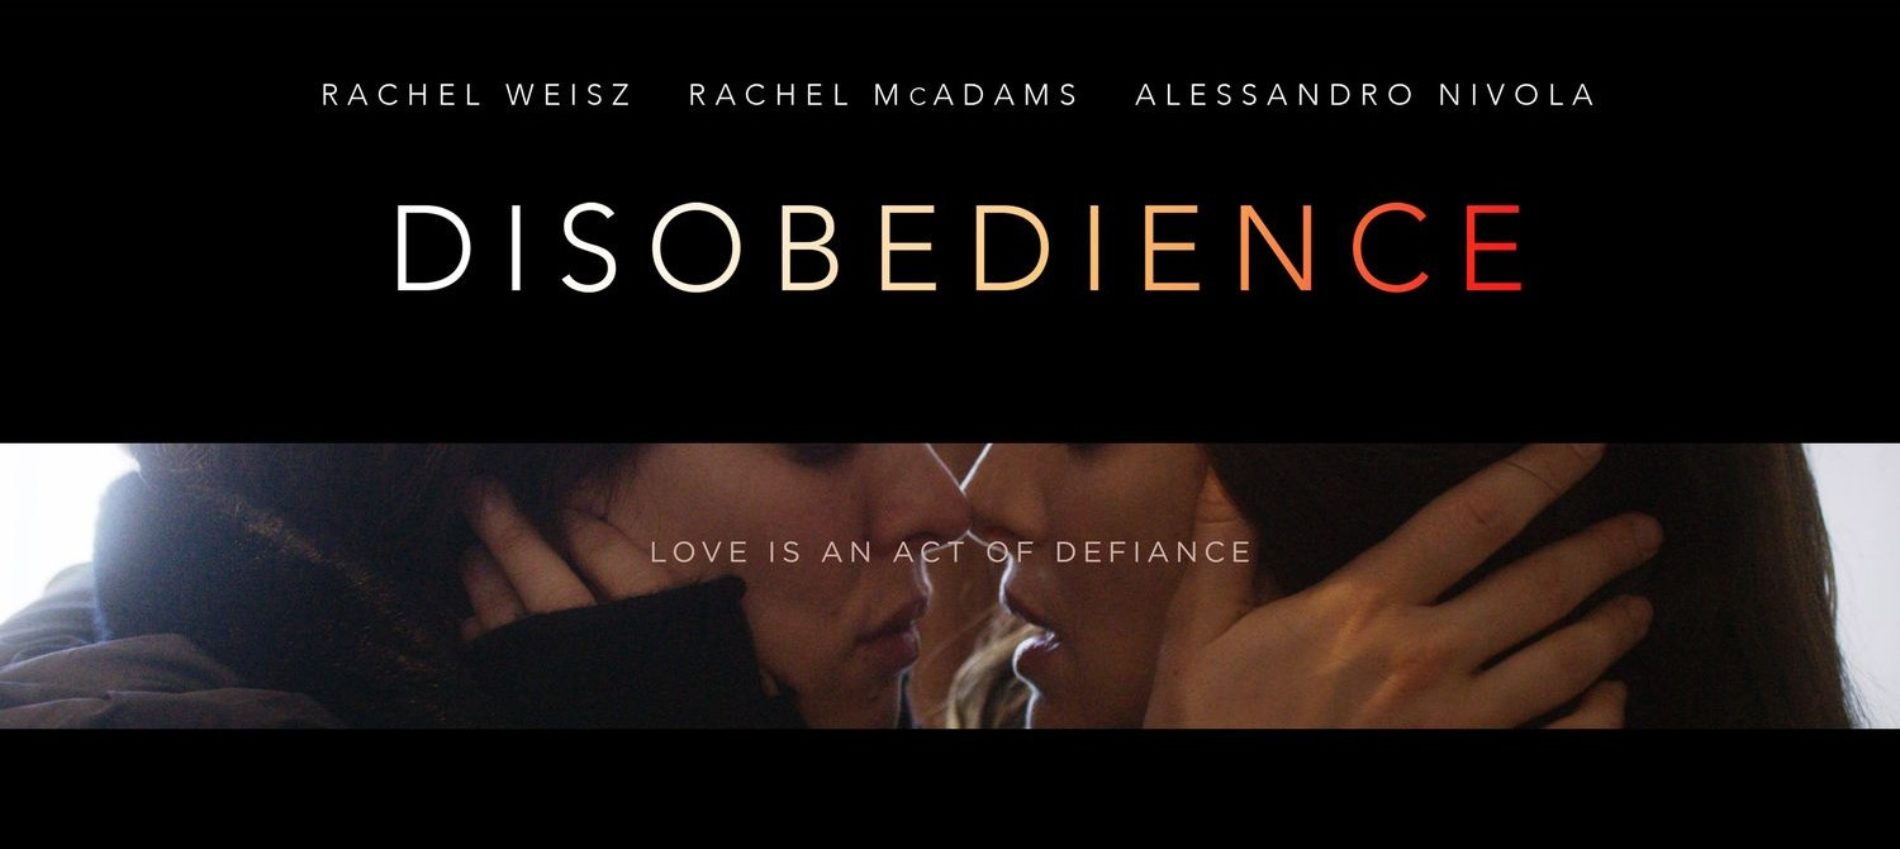 Rachel McAdams and Rachel Weisz Are SO NAUGHTY in trailer of upcoming film, 'Disobedience'